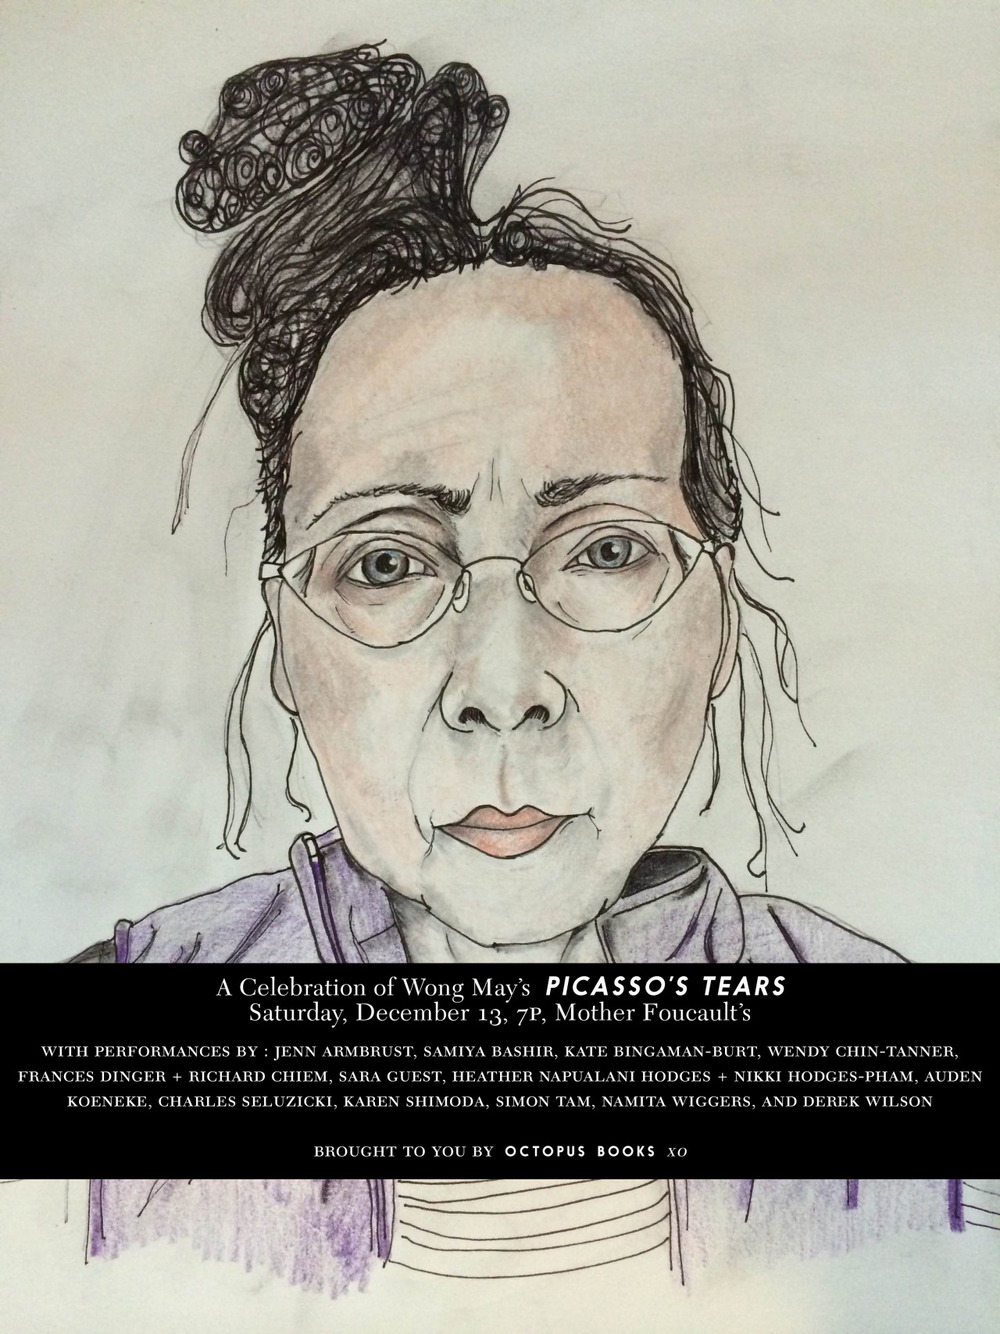 "This summer, Wong May's Picasso's Tears: Poems 1978-2013 was published by Octopus Books, which marks one of the very proudest moments in our small presses' history. Picasso's Tears is Wong May's fourth book of poems, but her first since leaving the United States in 1978.  We want to spread the news of the long-awaited return of Wong May to the poetry-reading world.  On Saturday, Dec. 13, at 7pm at Mother Foucault's Bookshop, we're celebrating Wong May with readings and performances by 15 of some of her most thoughtful readers.  Performing Wong May's work will be:  Jennifer Armbrust Samiya Bashir Kate Bingaman-Burt Wendy Chin-Tanner Frances Dinger and Richard Chiem Sara Brant Guest Heather Napualani Hodges and Nikki Hodges-Pham Auden Koeneke Charles Seluzicki Karen McAlister Shimoda Simon Tam Namita Wiggers Derek Hunter Wilson This celebration serves as a fund-raiser for Octopus Books, so please bring some cash, and consider one of the following options at the door:  $10 donation $15 letter-pressed broadside of Wong May's ""Teaching Simone Weil to Eat a Pineapple"" designed by Drew Swenhaugen in a limited edition of 50.  $20 A limited hard cover edition of Picasso's Tears $25 Book + Broadside Mingling starts at 7pm, and the performances will start promptly at 7:45. There will be some beer and wine available, but also please feel free to also bring your own.  An interview with Wong May in the May issue of The Believer. Wong May at the Poetry Foundation."